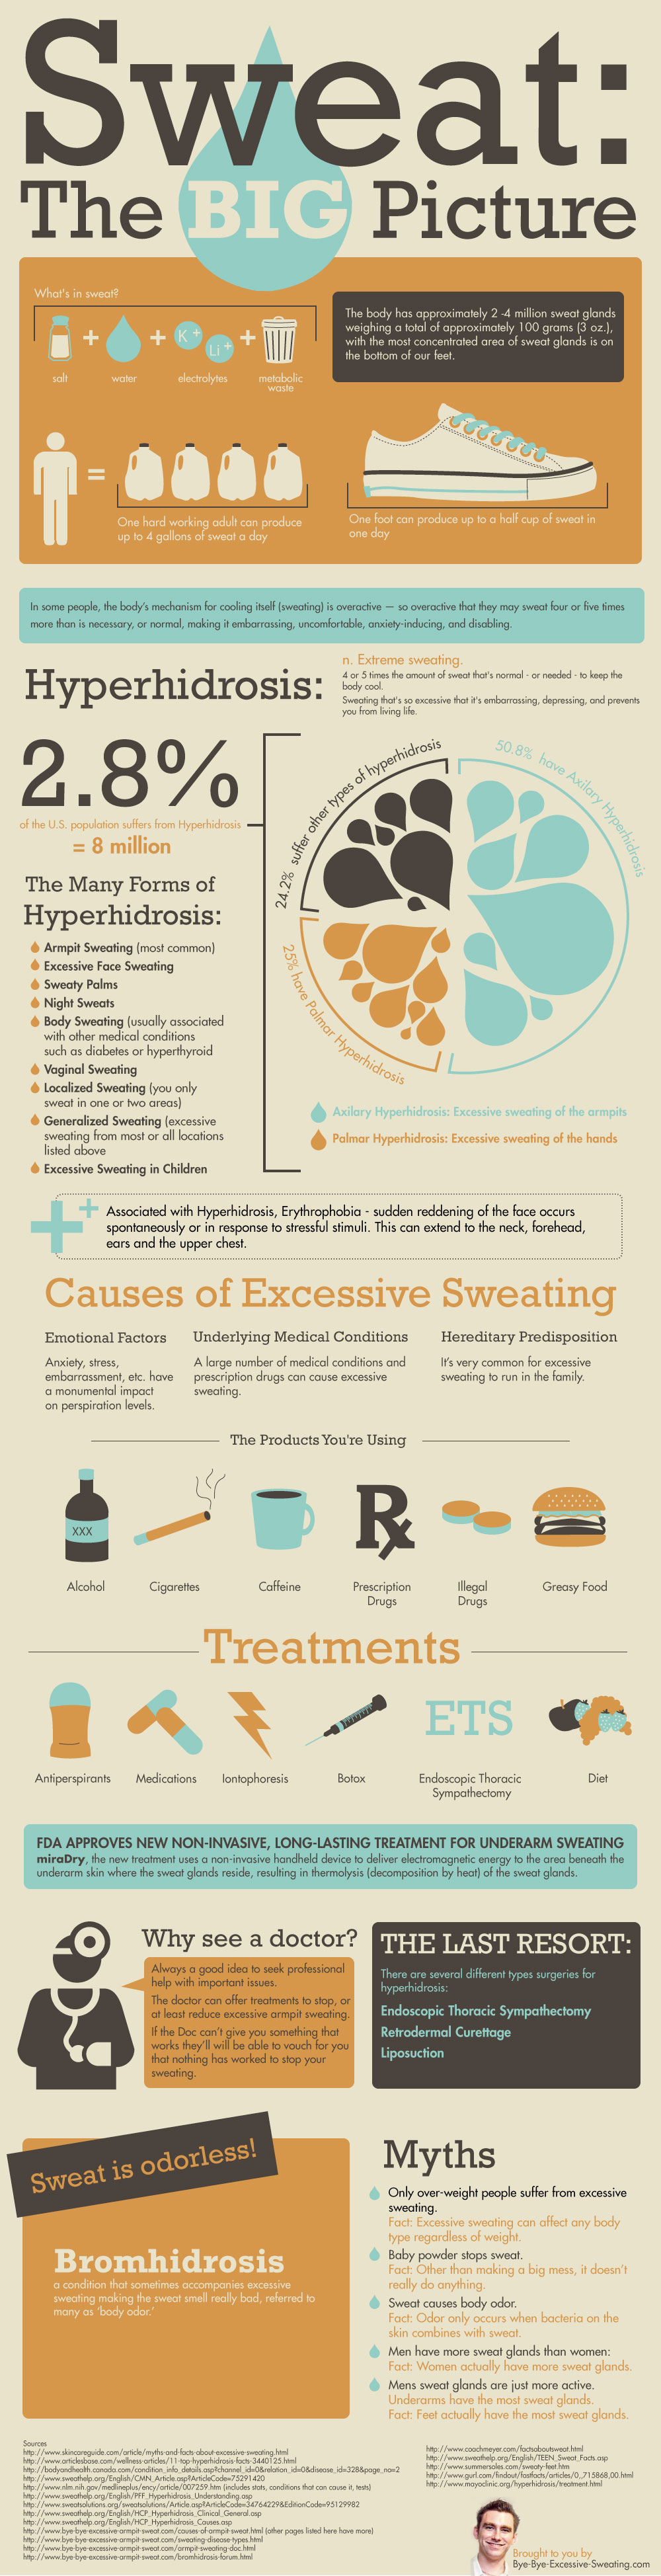 Discover How To Stop Excessive Sweating with this fun infographic!